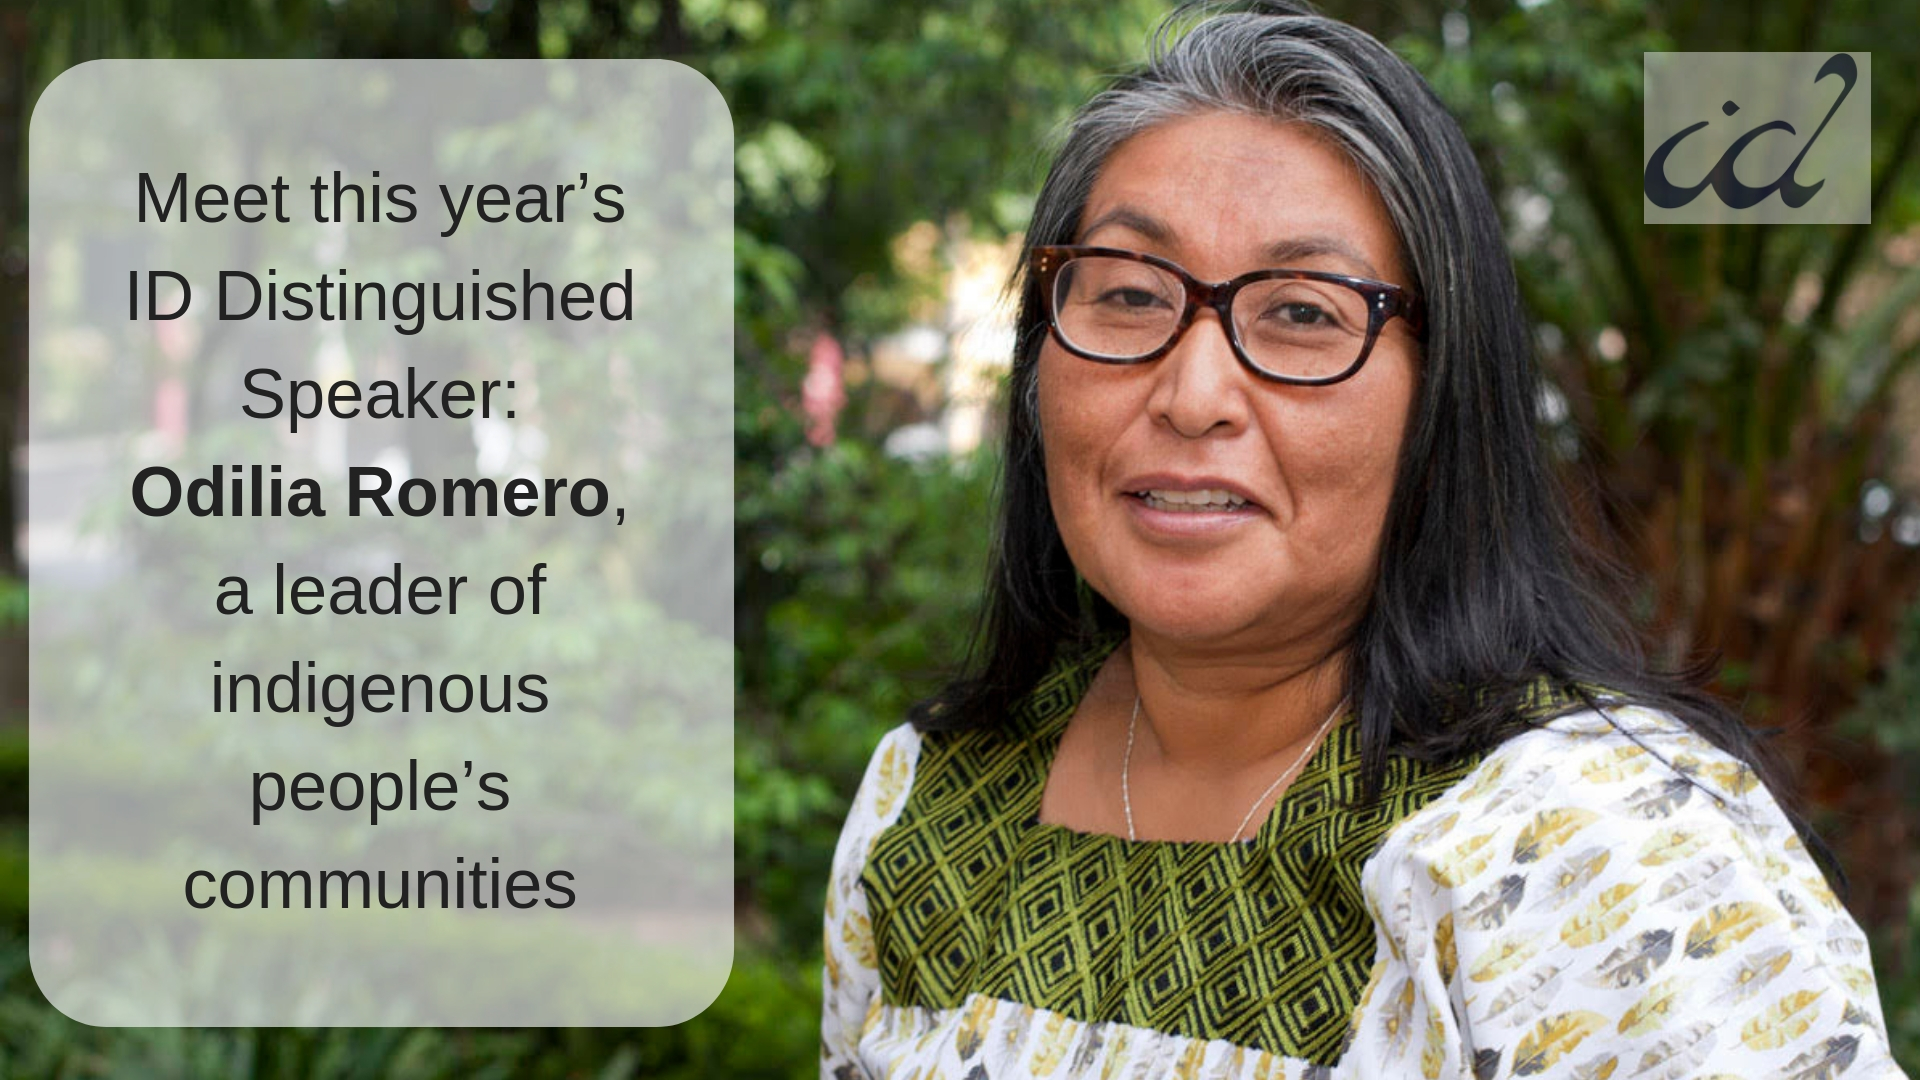 [Odilia Romero, a leader of indigenous people's communiies]